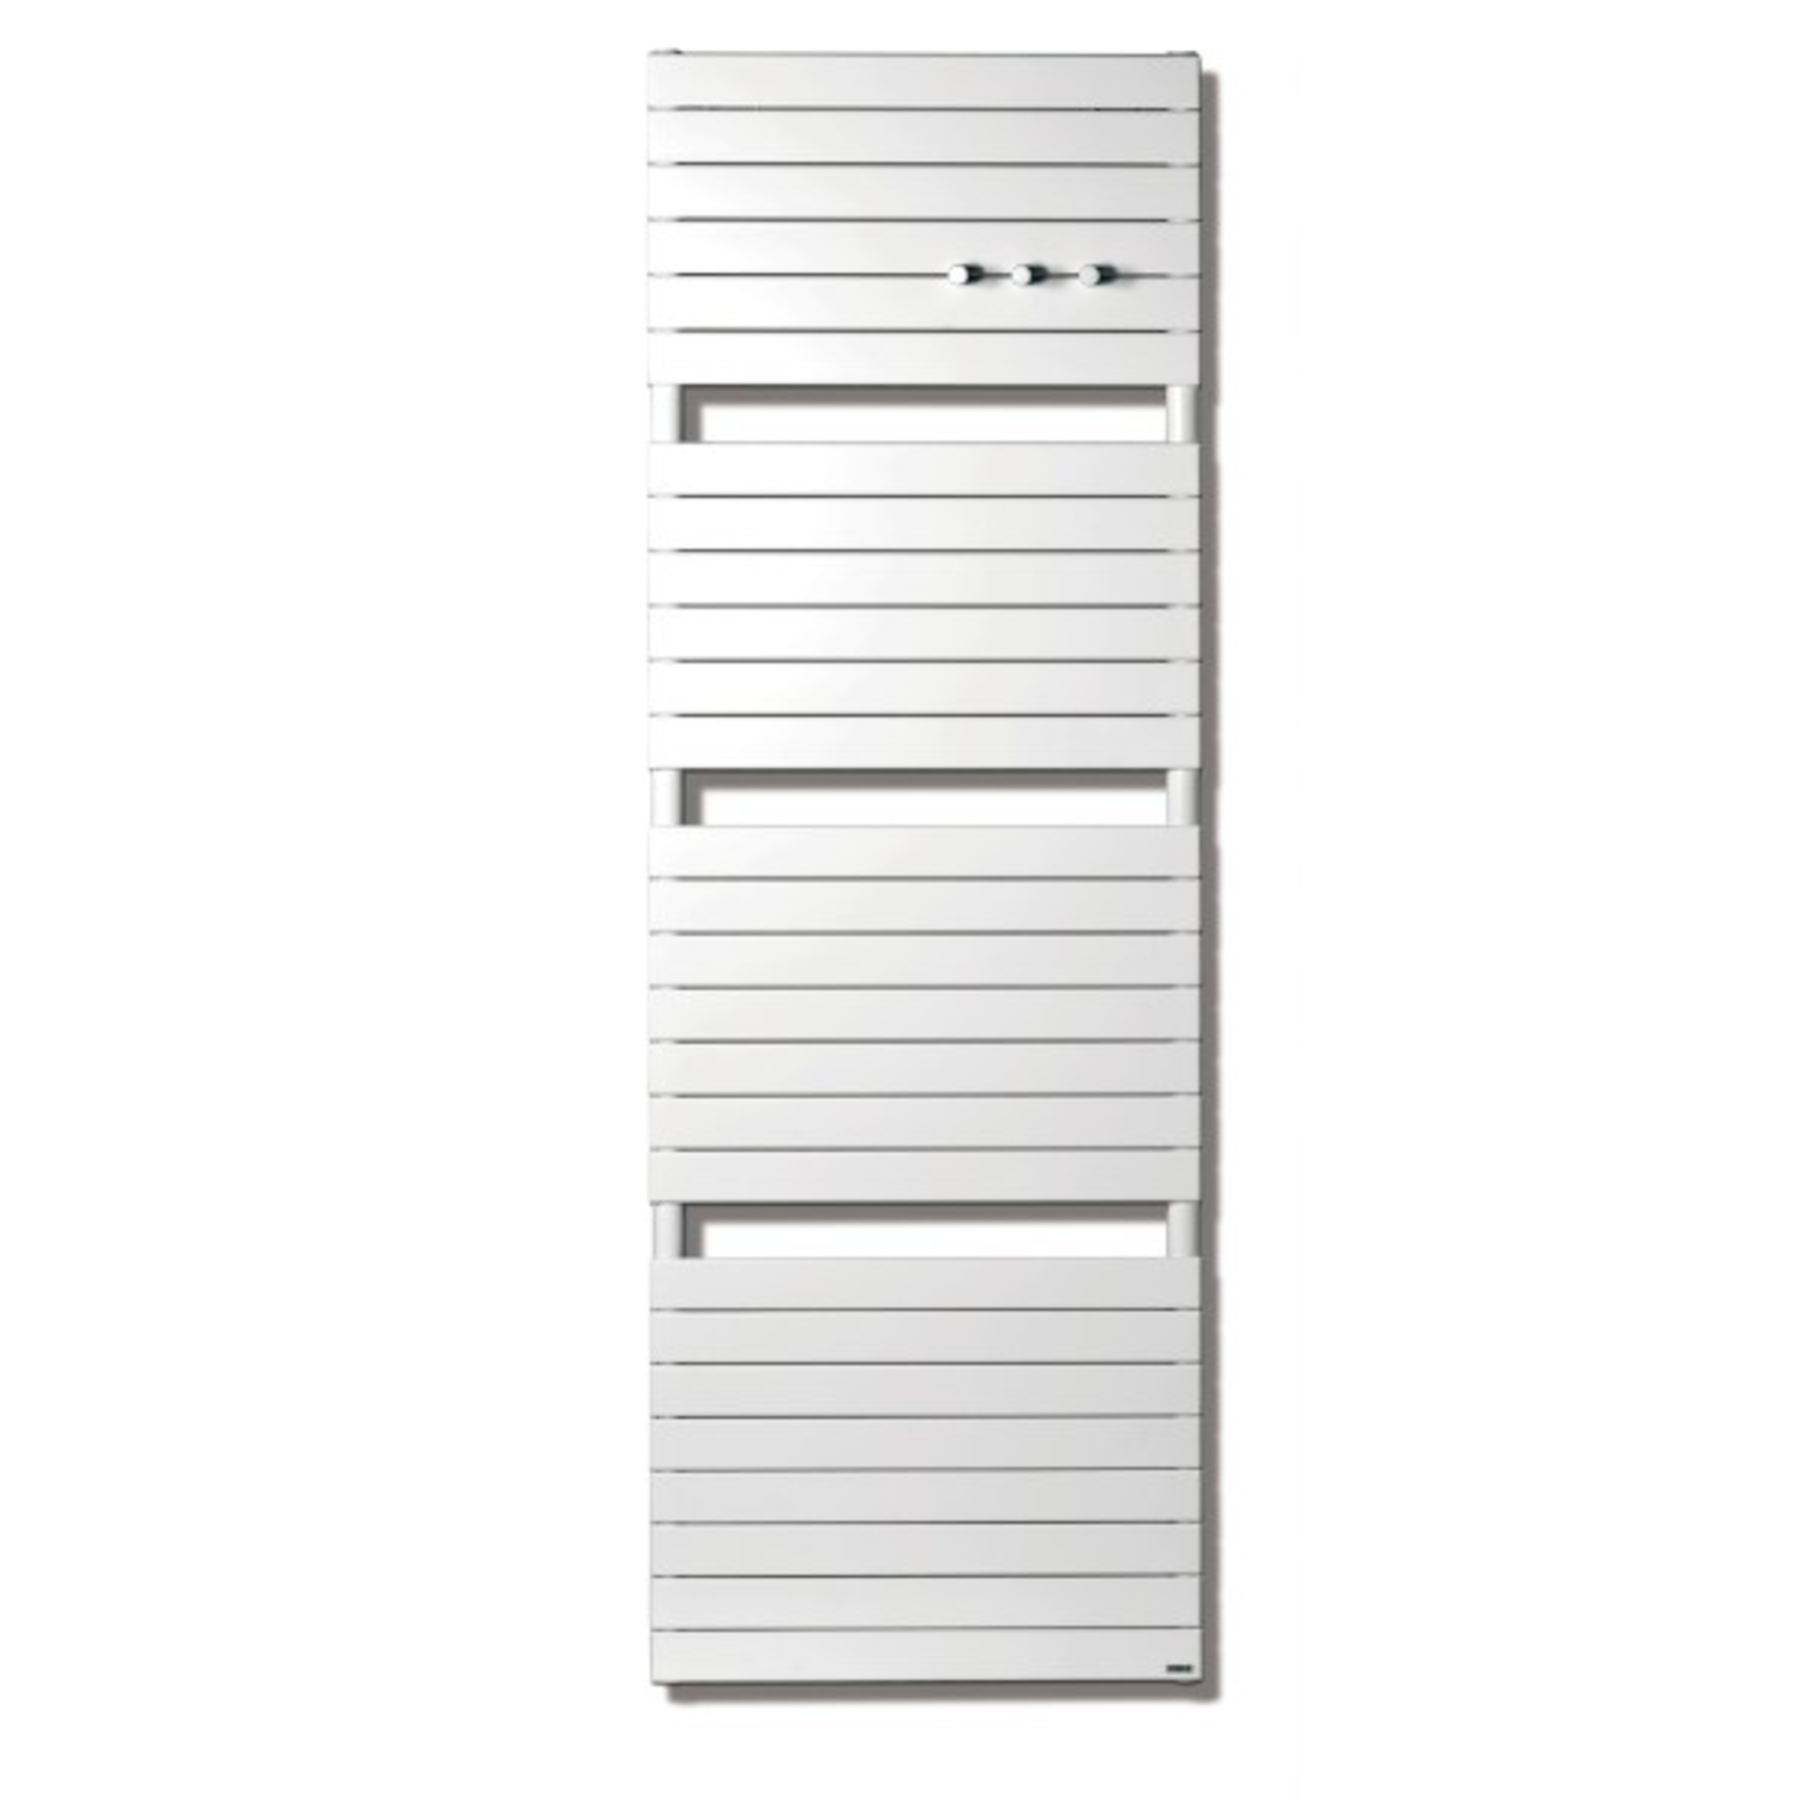 Vasco Aster HF designradiator horizontaal 450x1150mm 512 watt warmgrijs (N506)